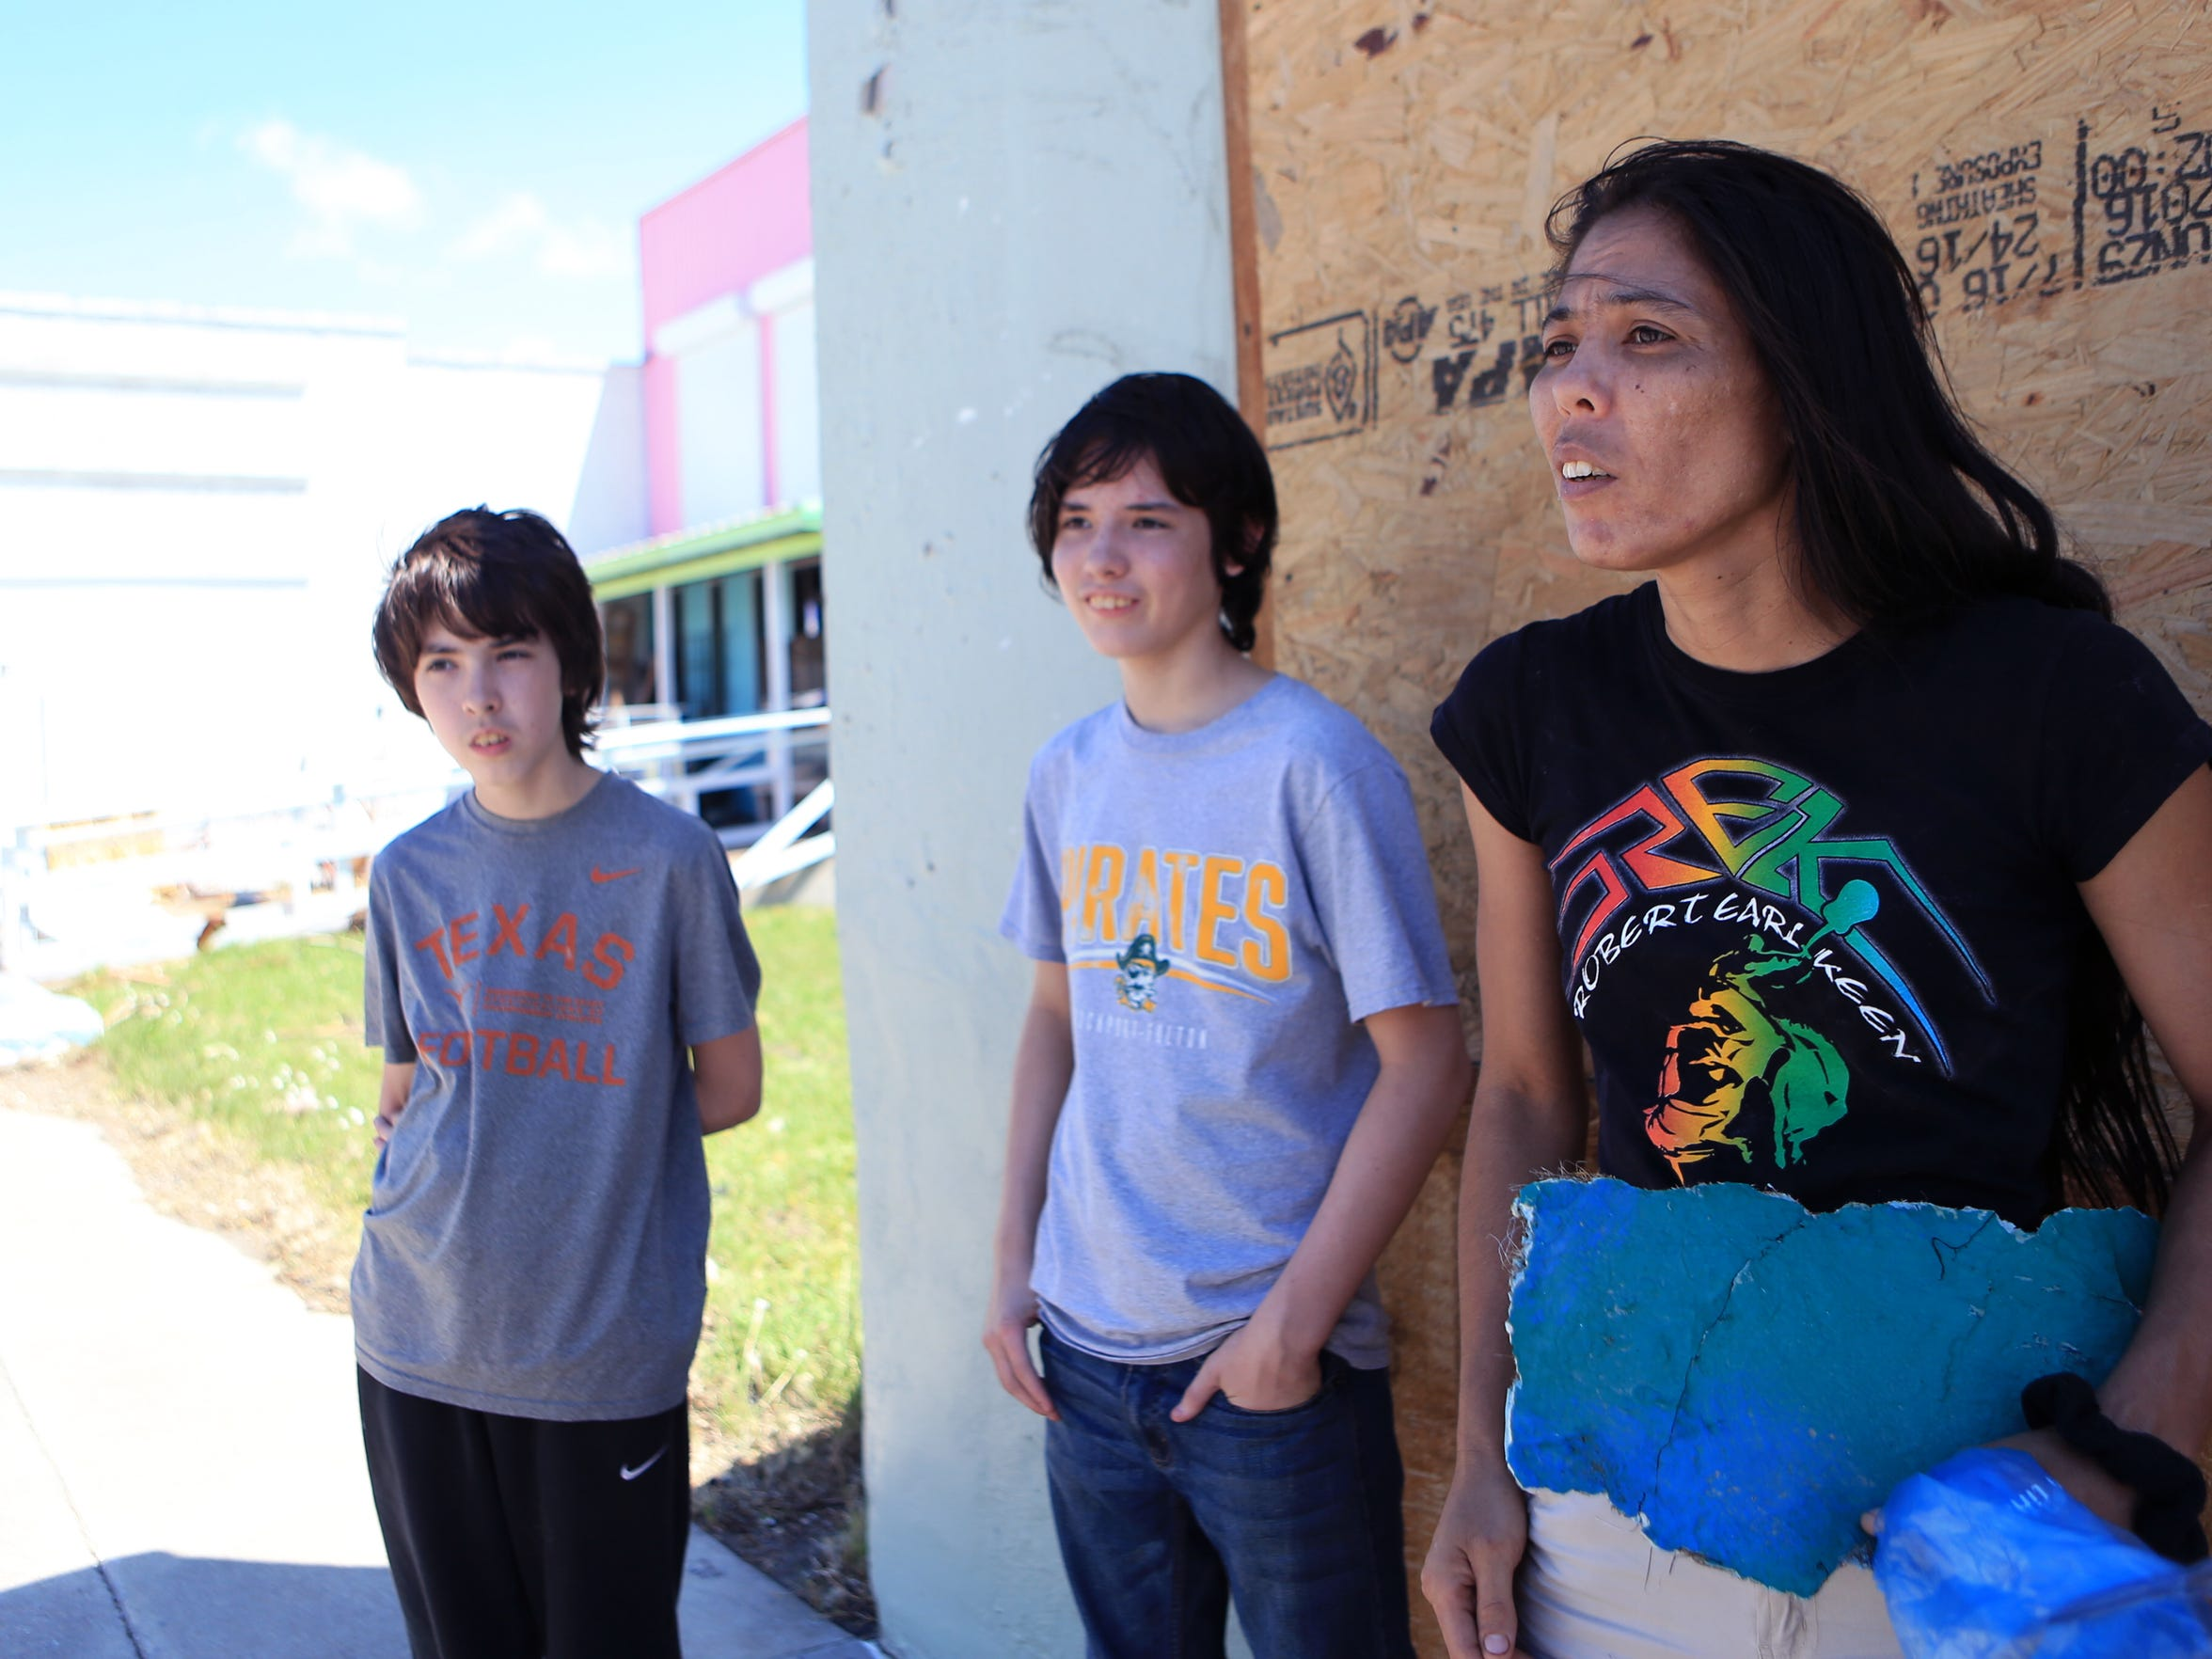 The Allgood family, Ryan (from left), 14, Zak, 15, and Emiko stayed in their home through Hurricane Harvey in Rockport, TX. They are packing up a trailer and leaving town for good.